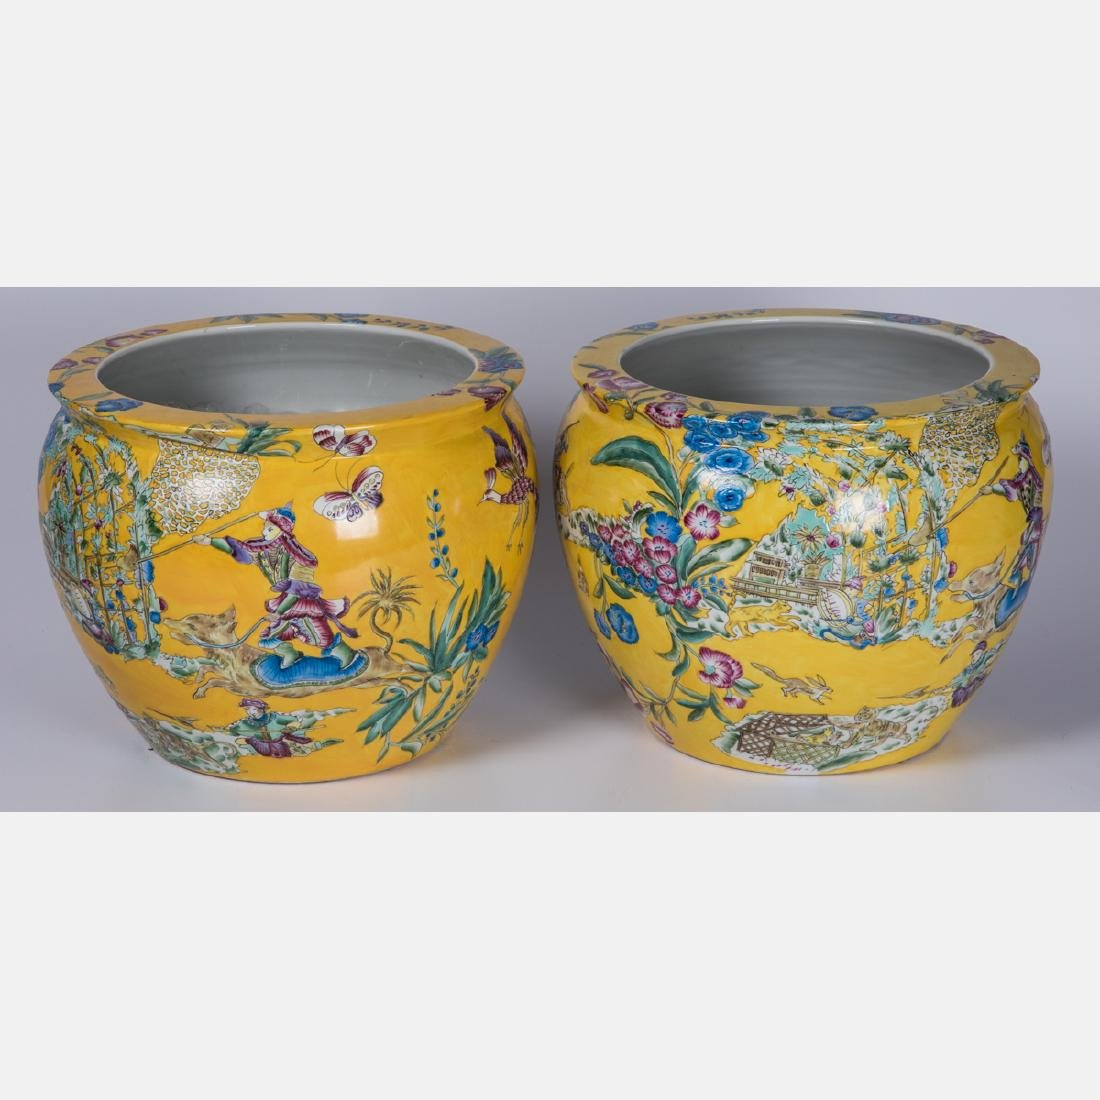 A Pair of Chinese Famille Jaune Porcelain Fish Bowls,